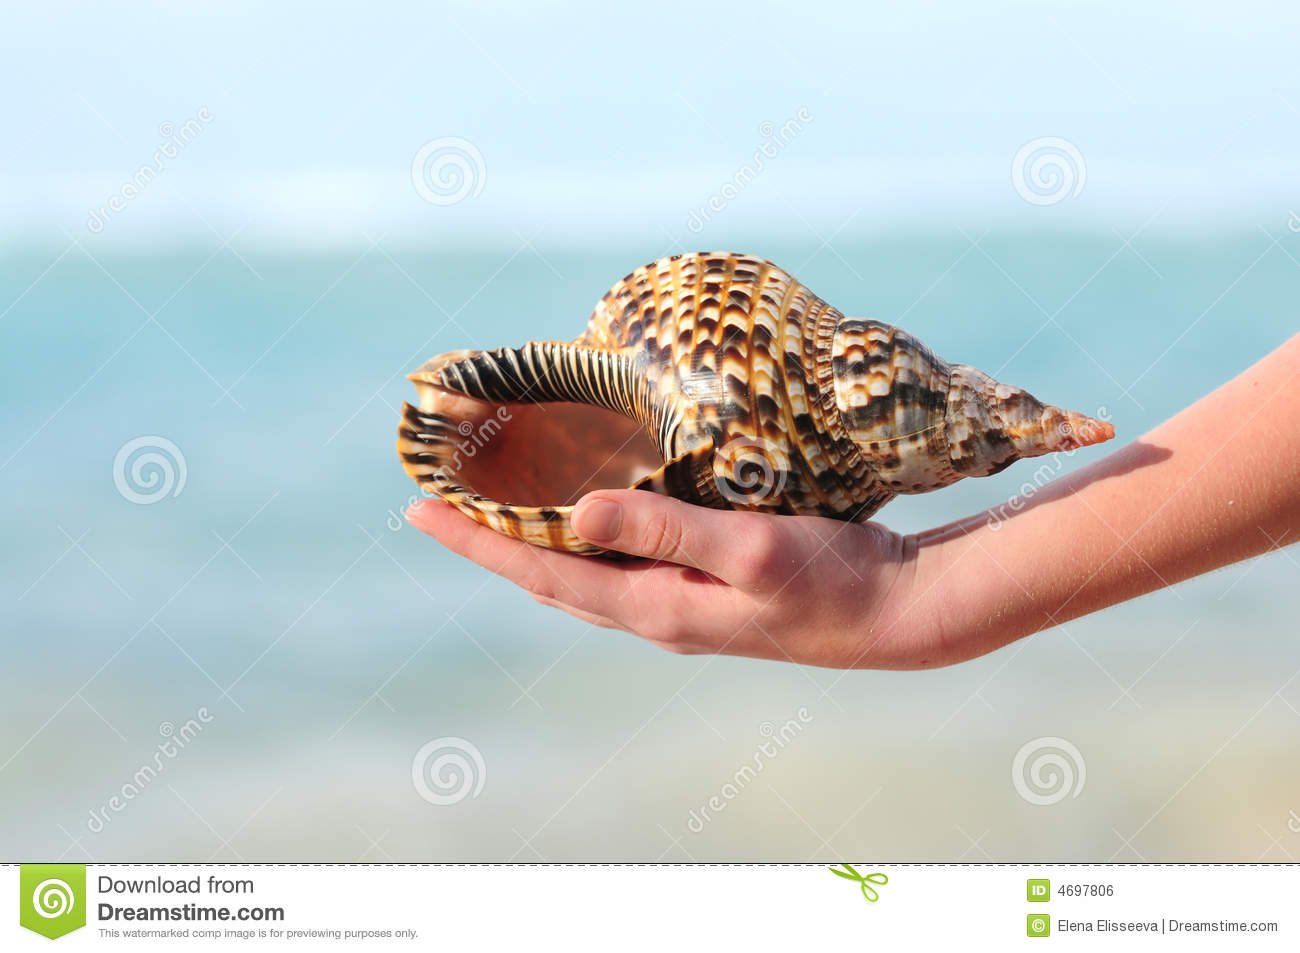 Seashell in hand